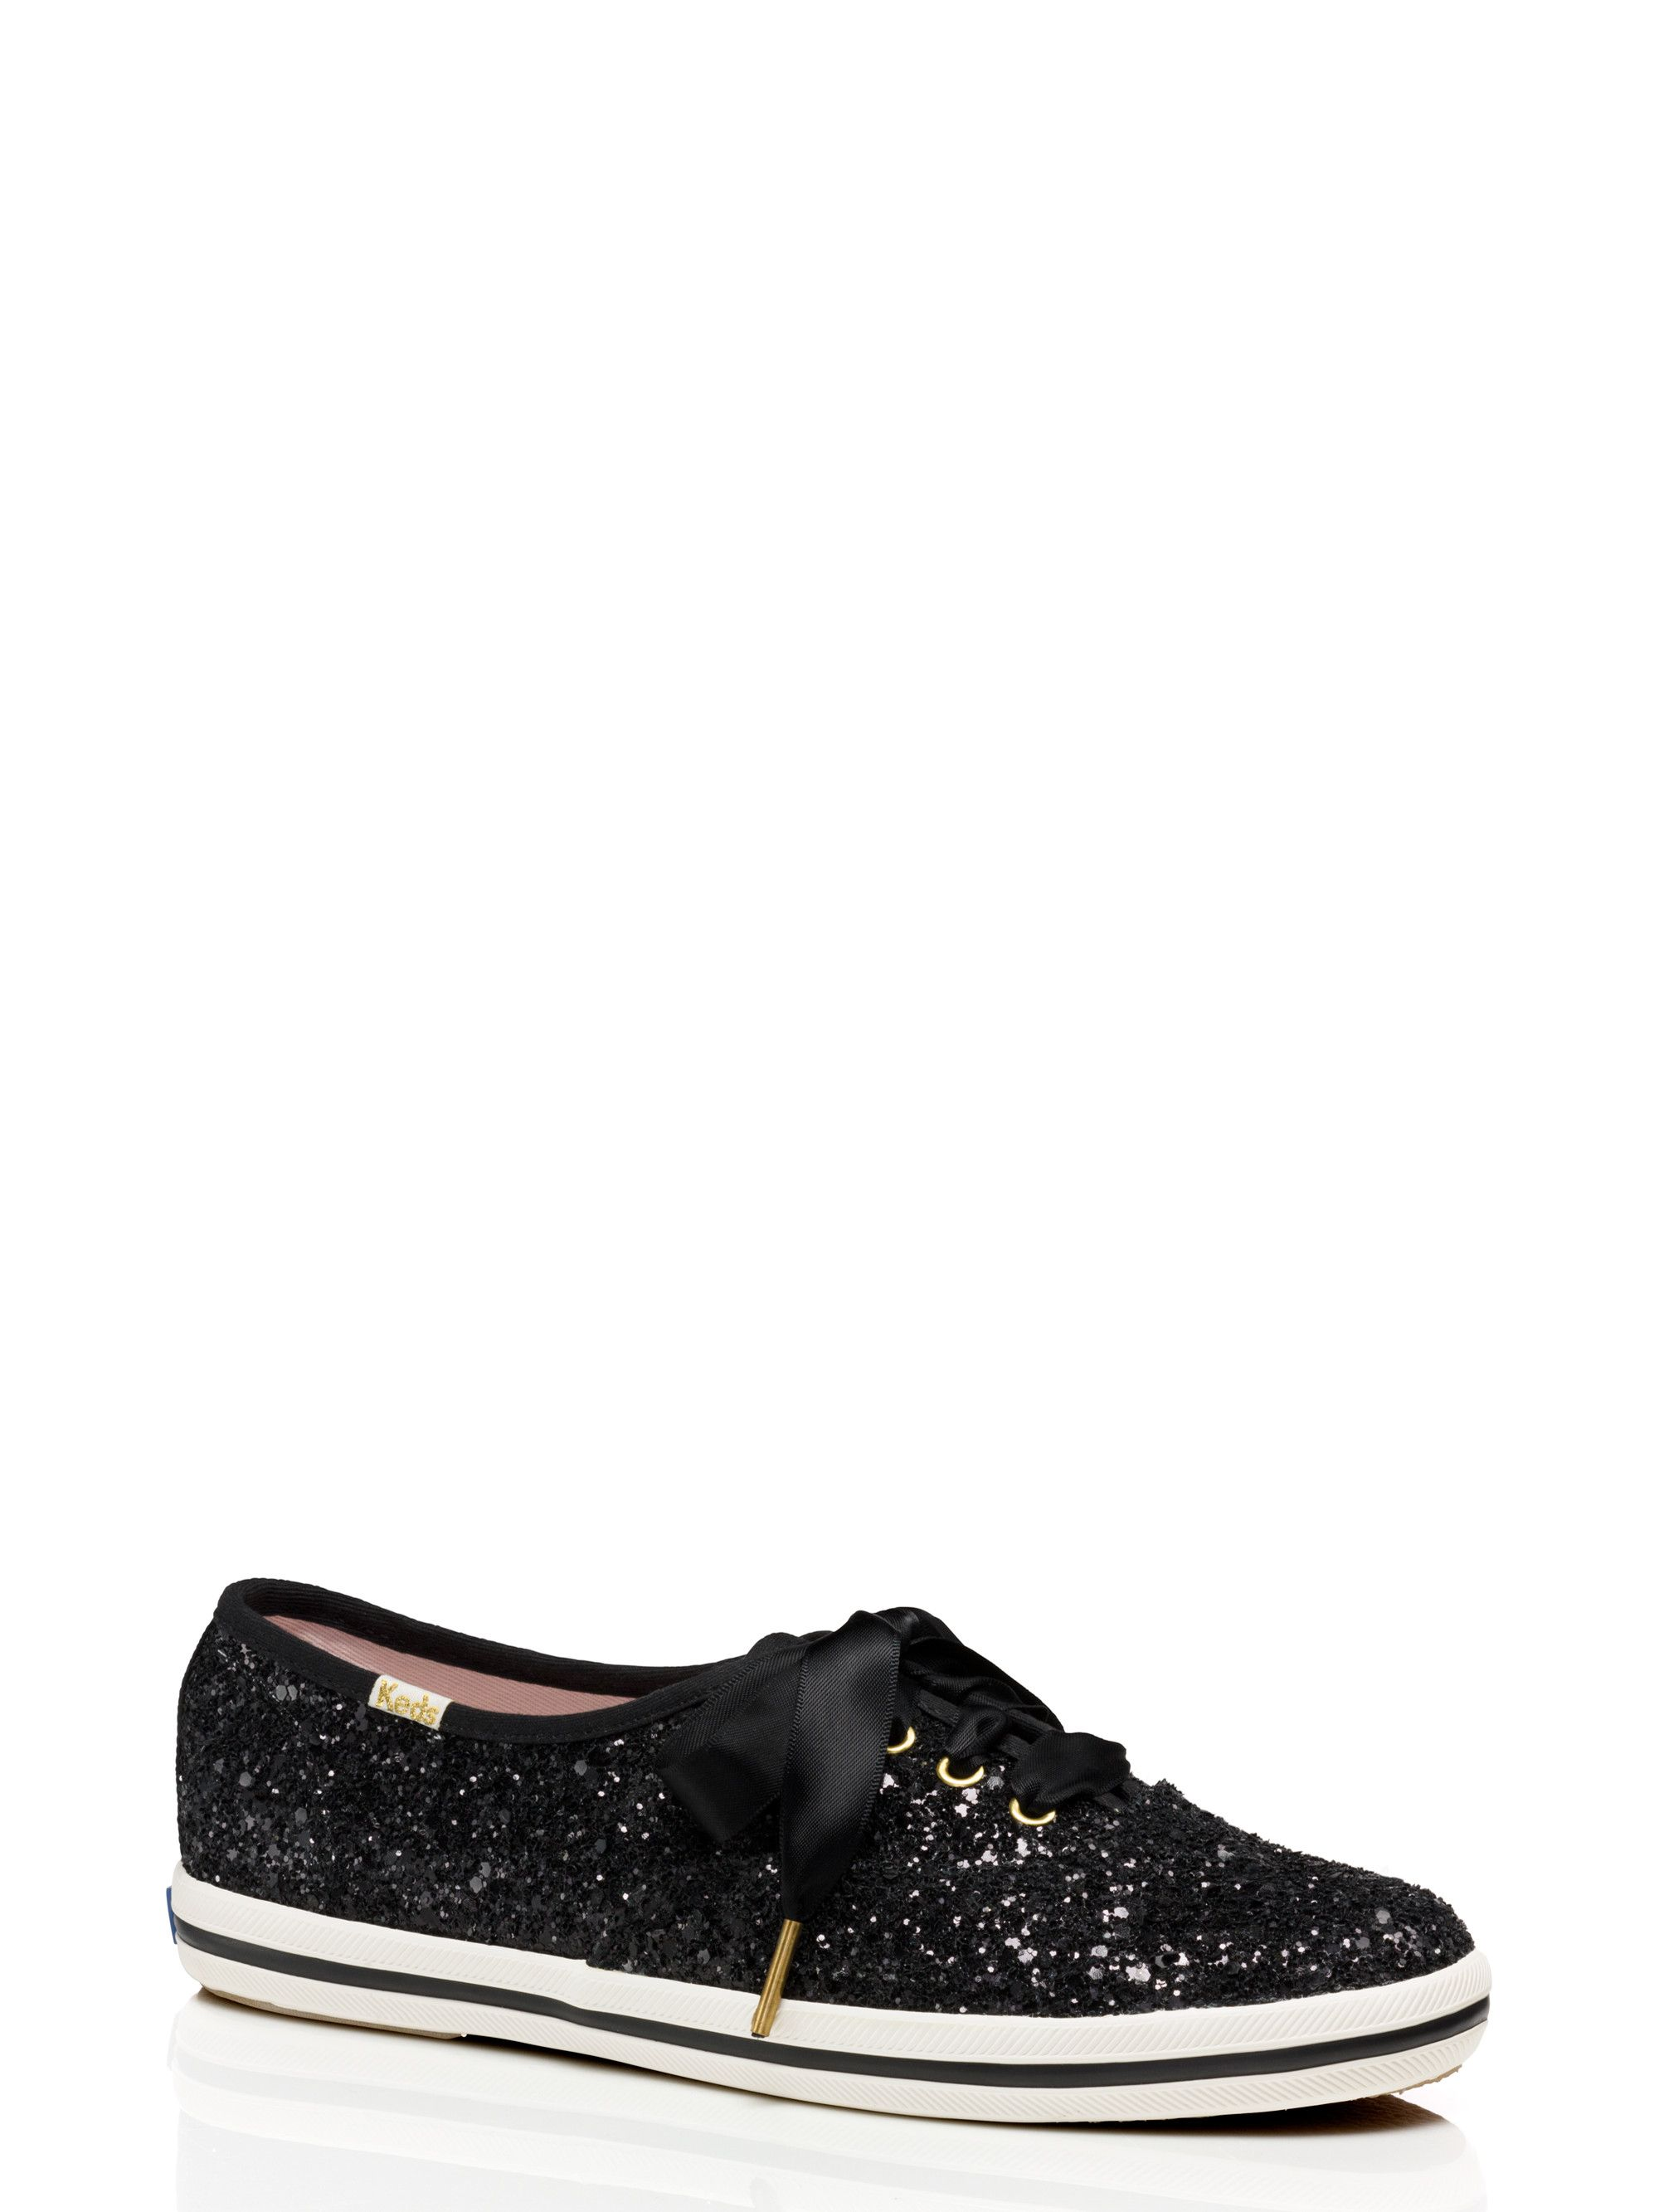 05b19e717e5 keds for kate spade new york glitter sneakers - kate spade new york ...